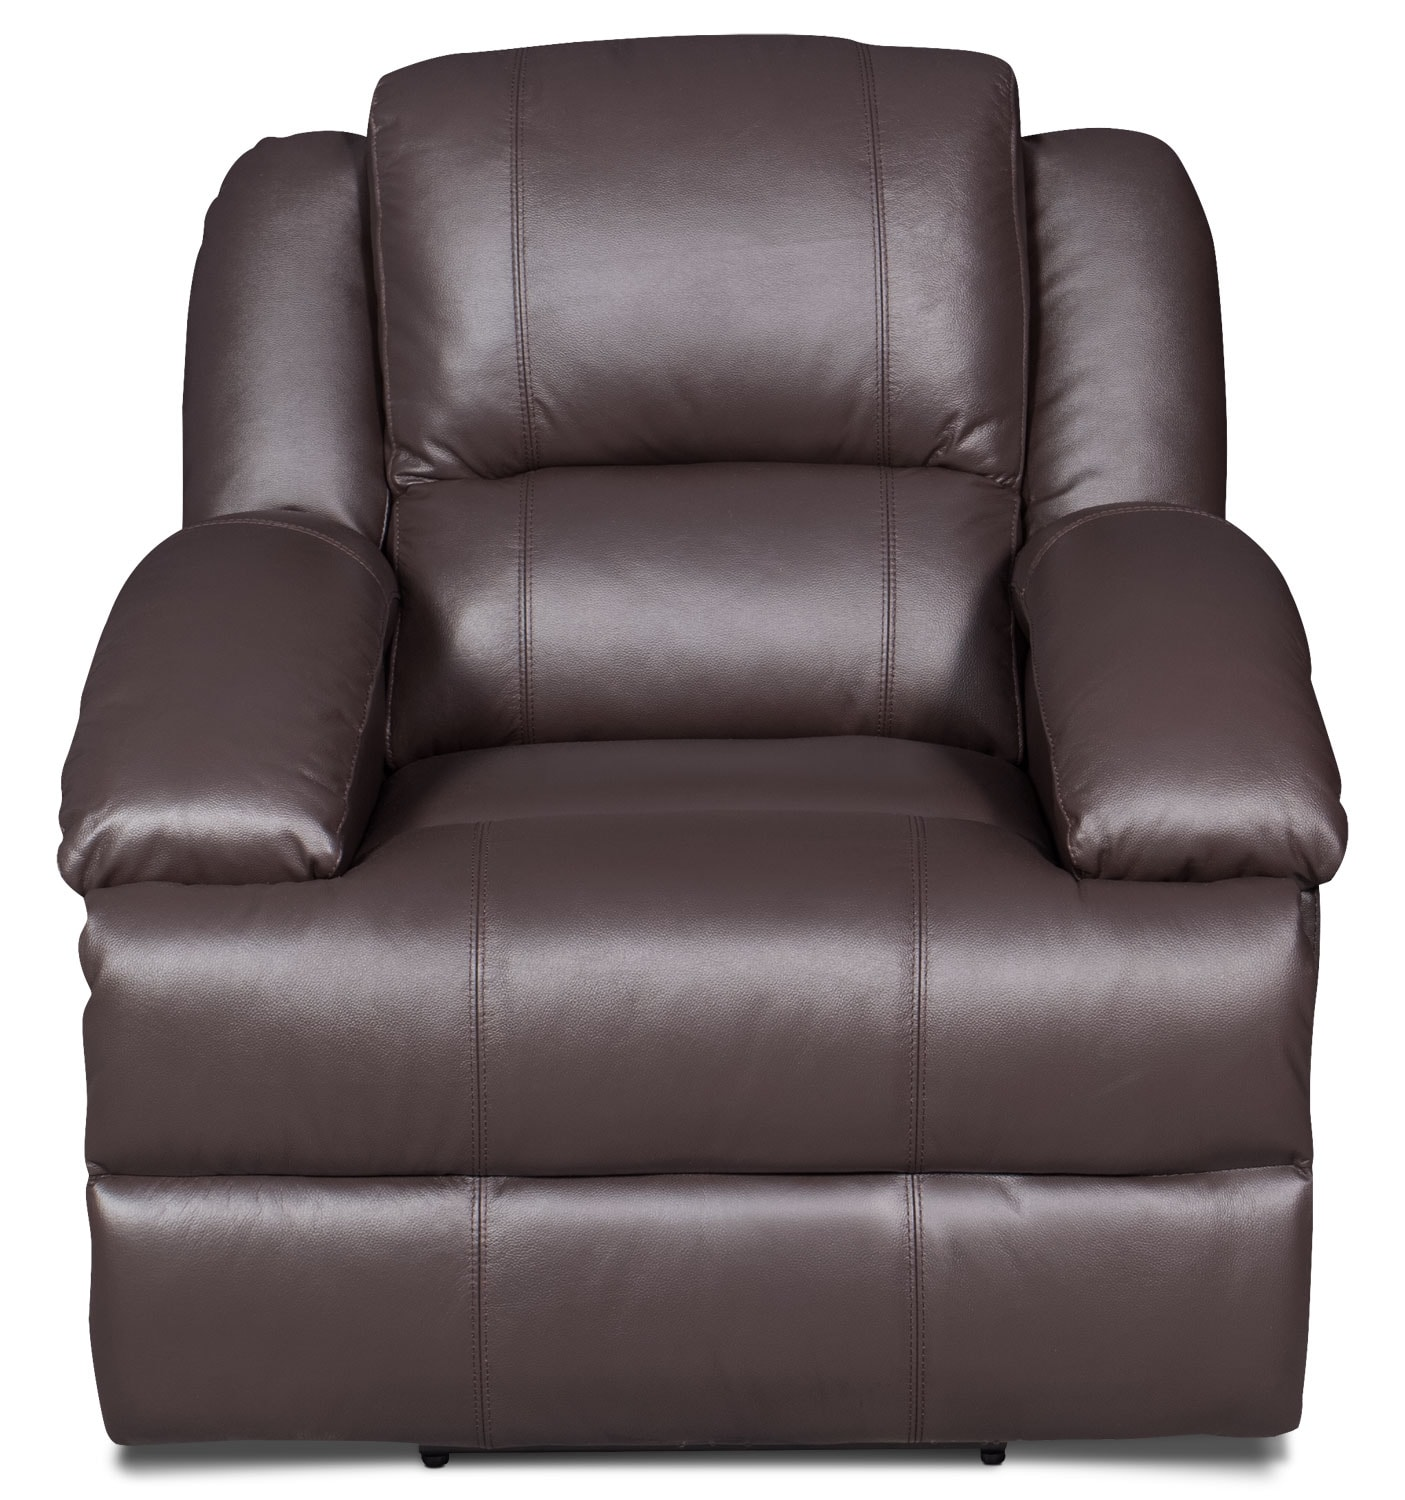 Luka Genuine Leather Power Reclining Chair - Brown